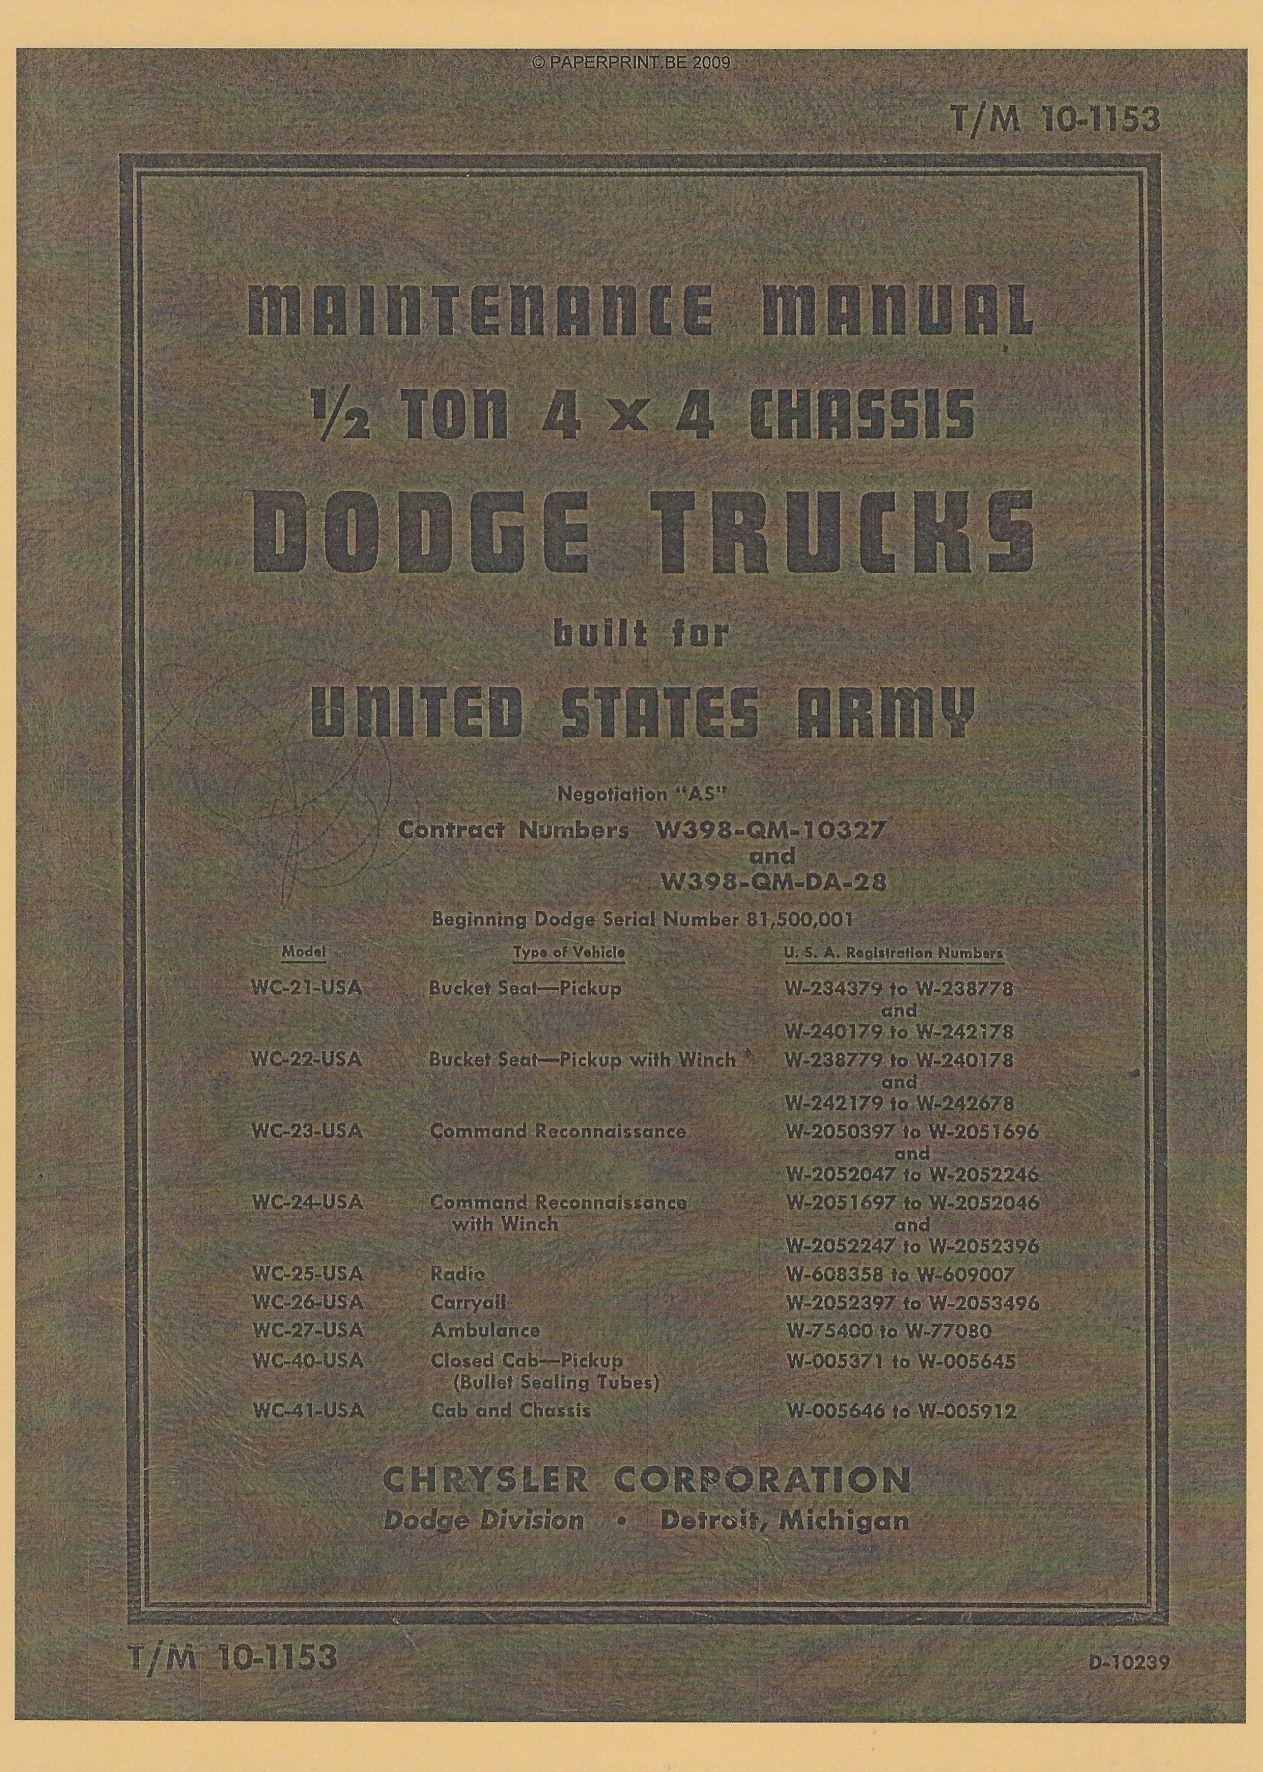 TM 10-1153 US ½ TON 4x4 CHASSIS DODGE TRUCKS